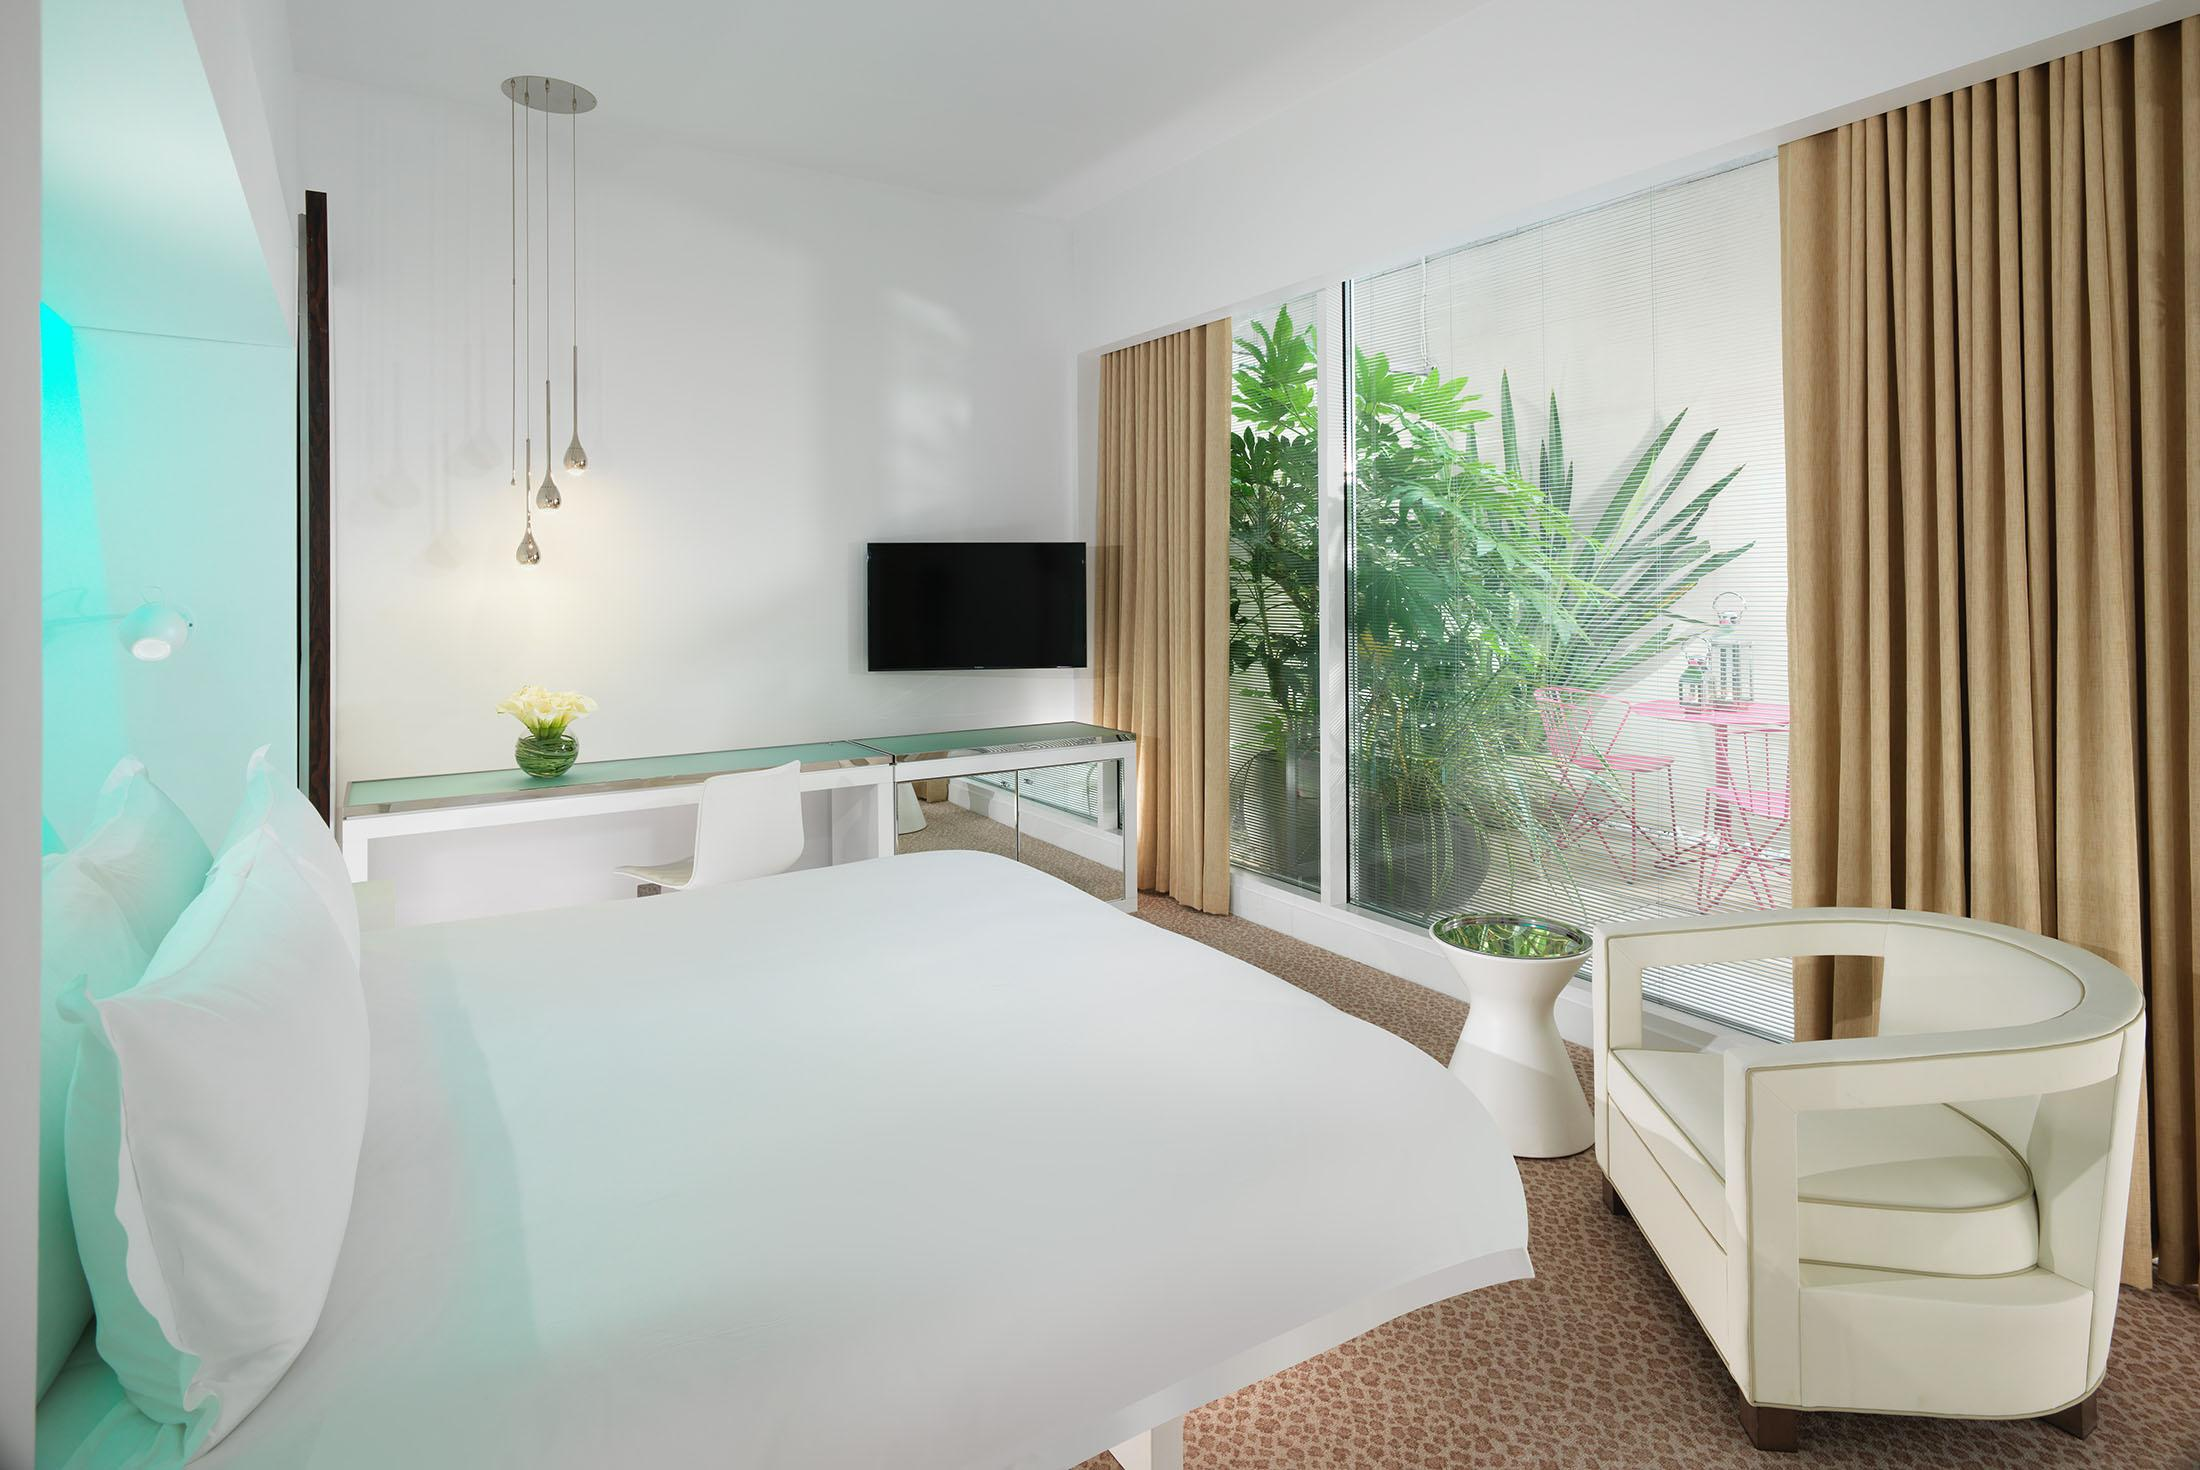 deluxe garden hotel room with bed and plants